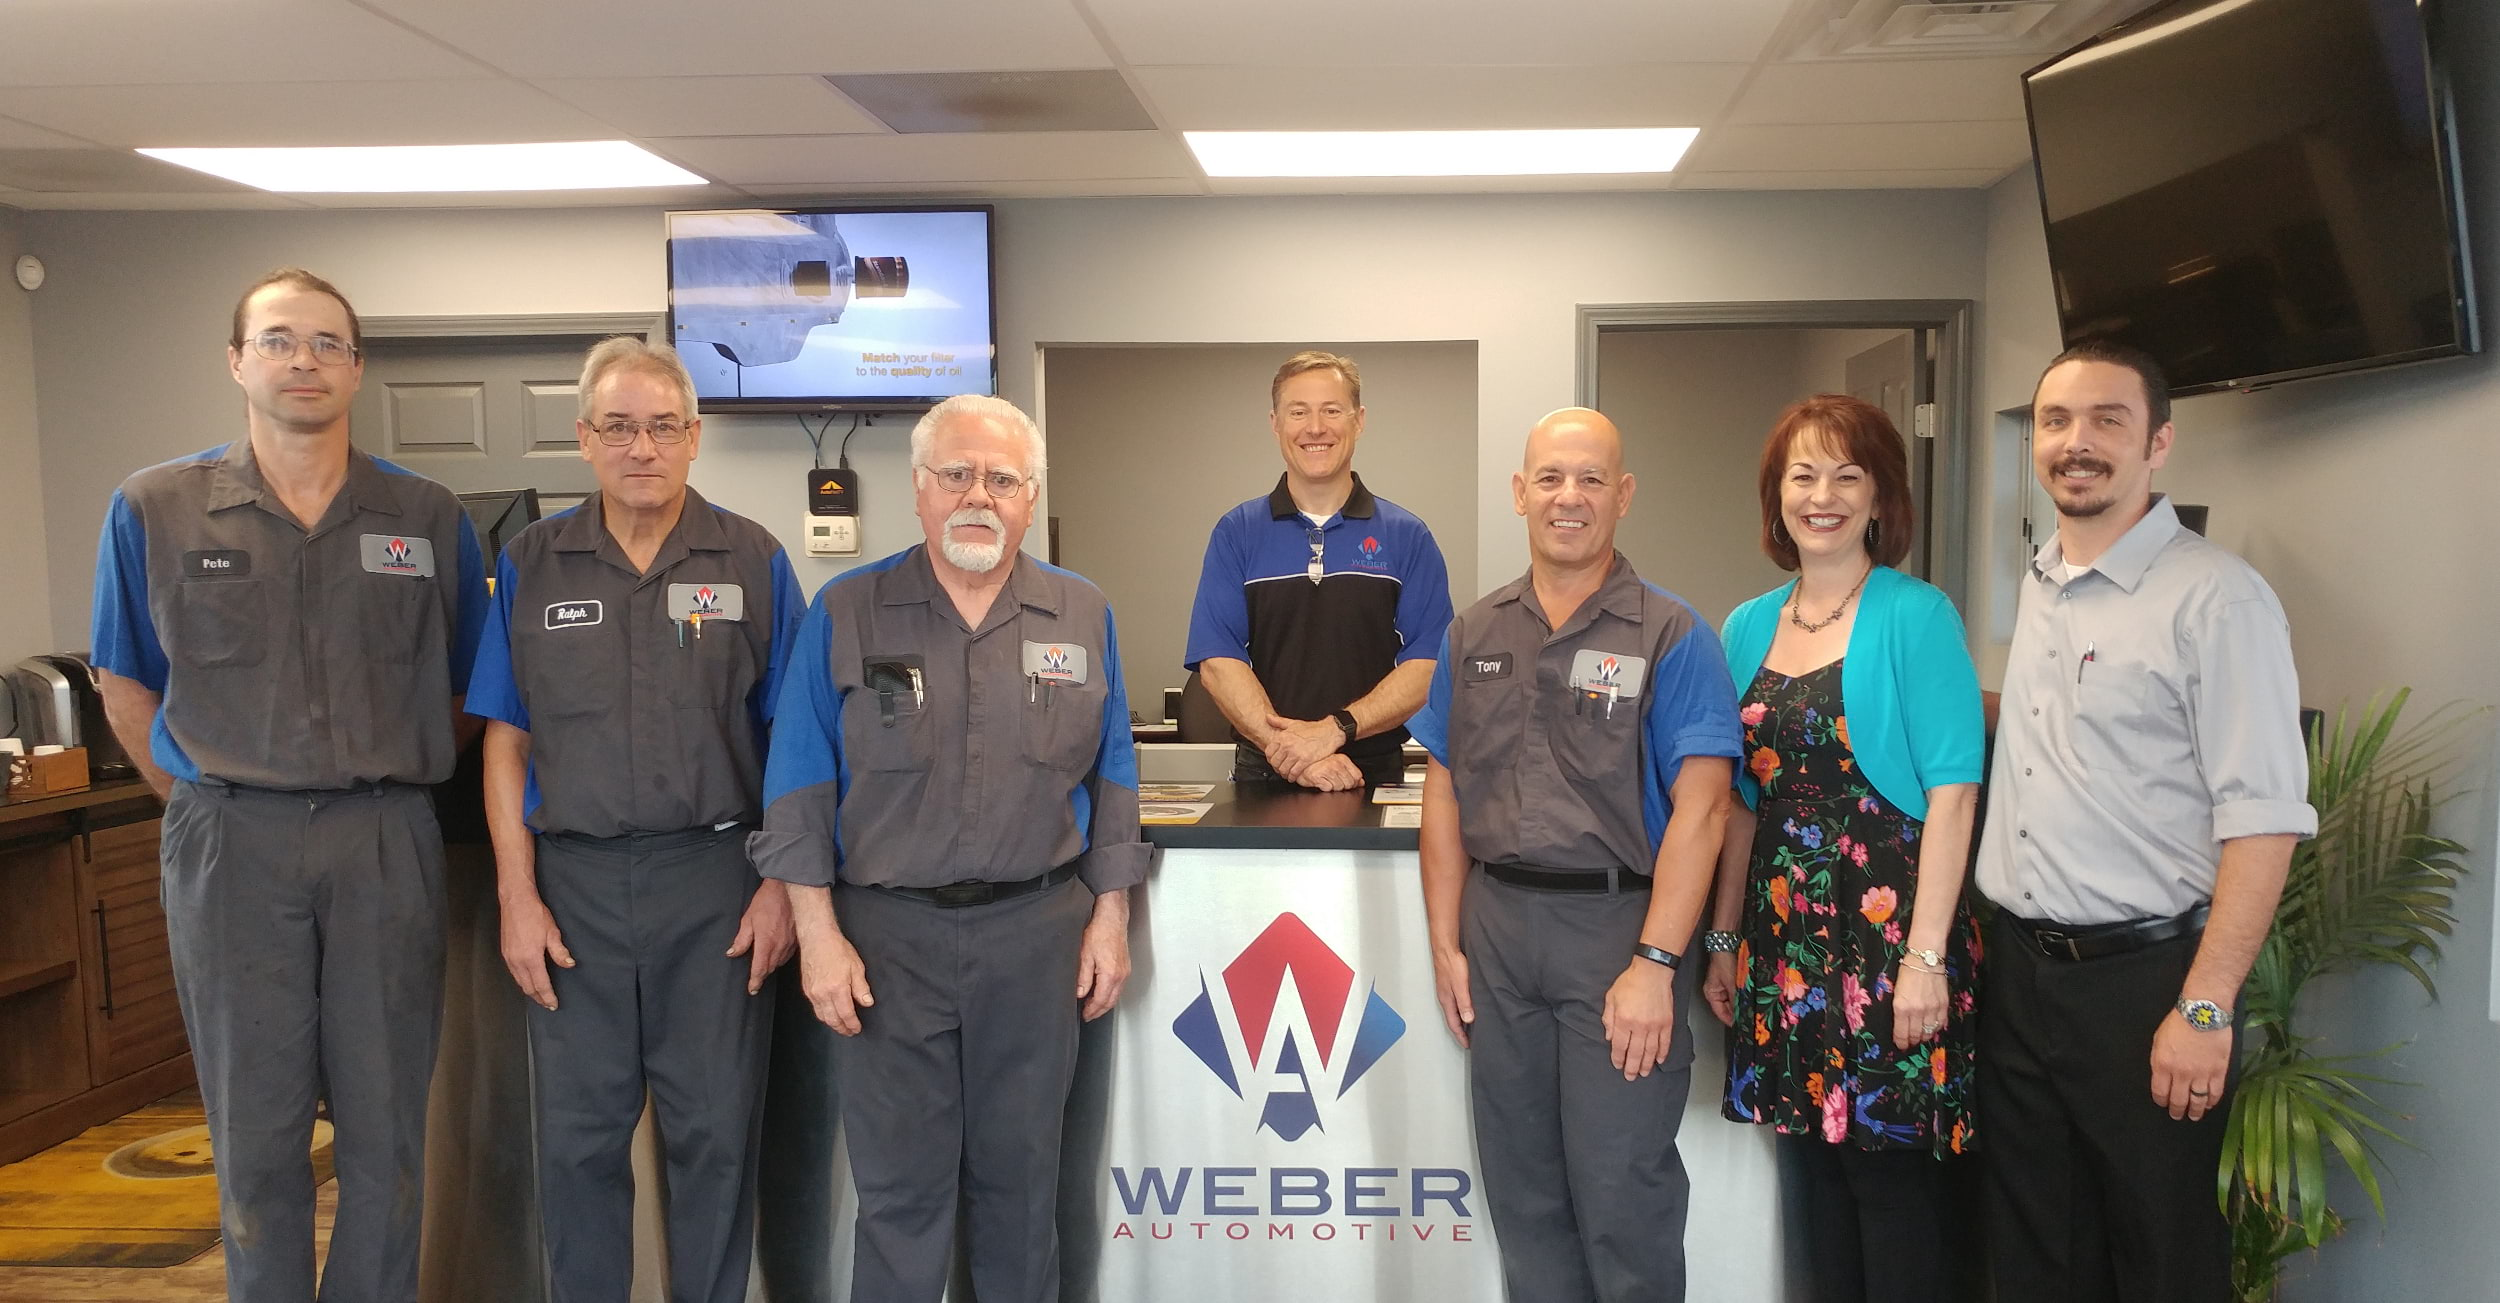 Weber Automotive Staff: Pete, Ralph, Jim, Bryan, Tony, Mary, Jason